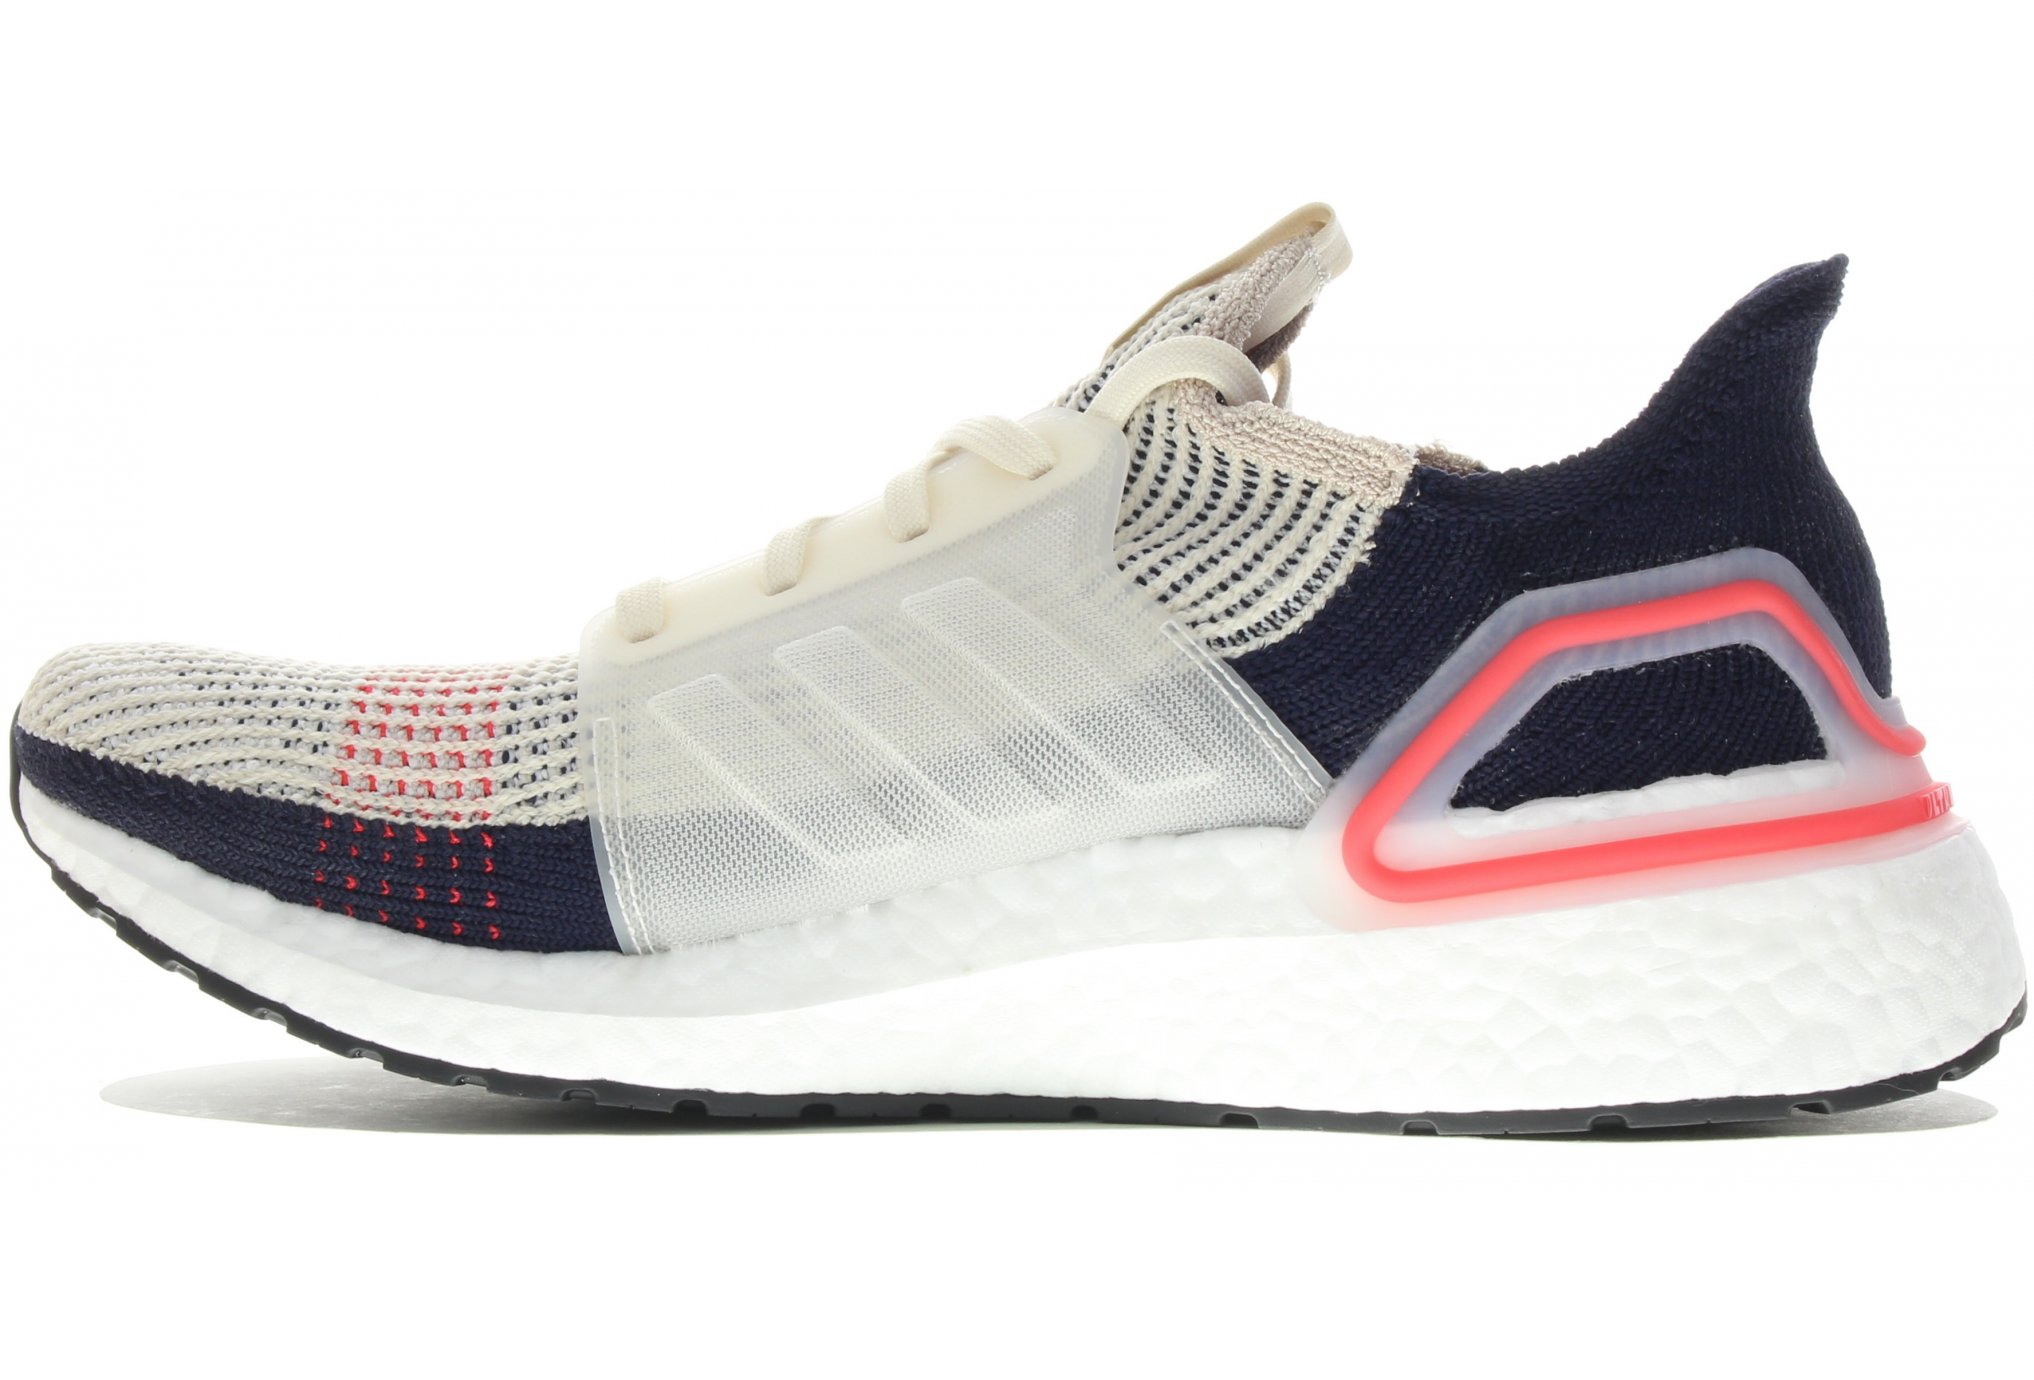 Adidas UltraBoost 19 : nouvelle chaussure running pour